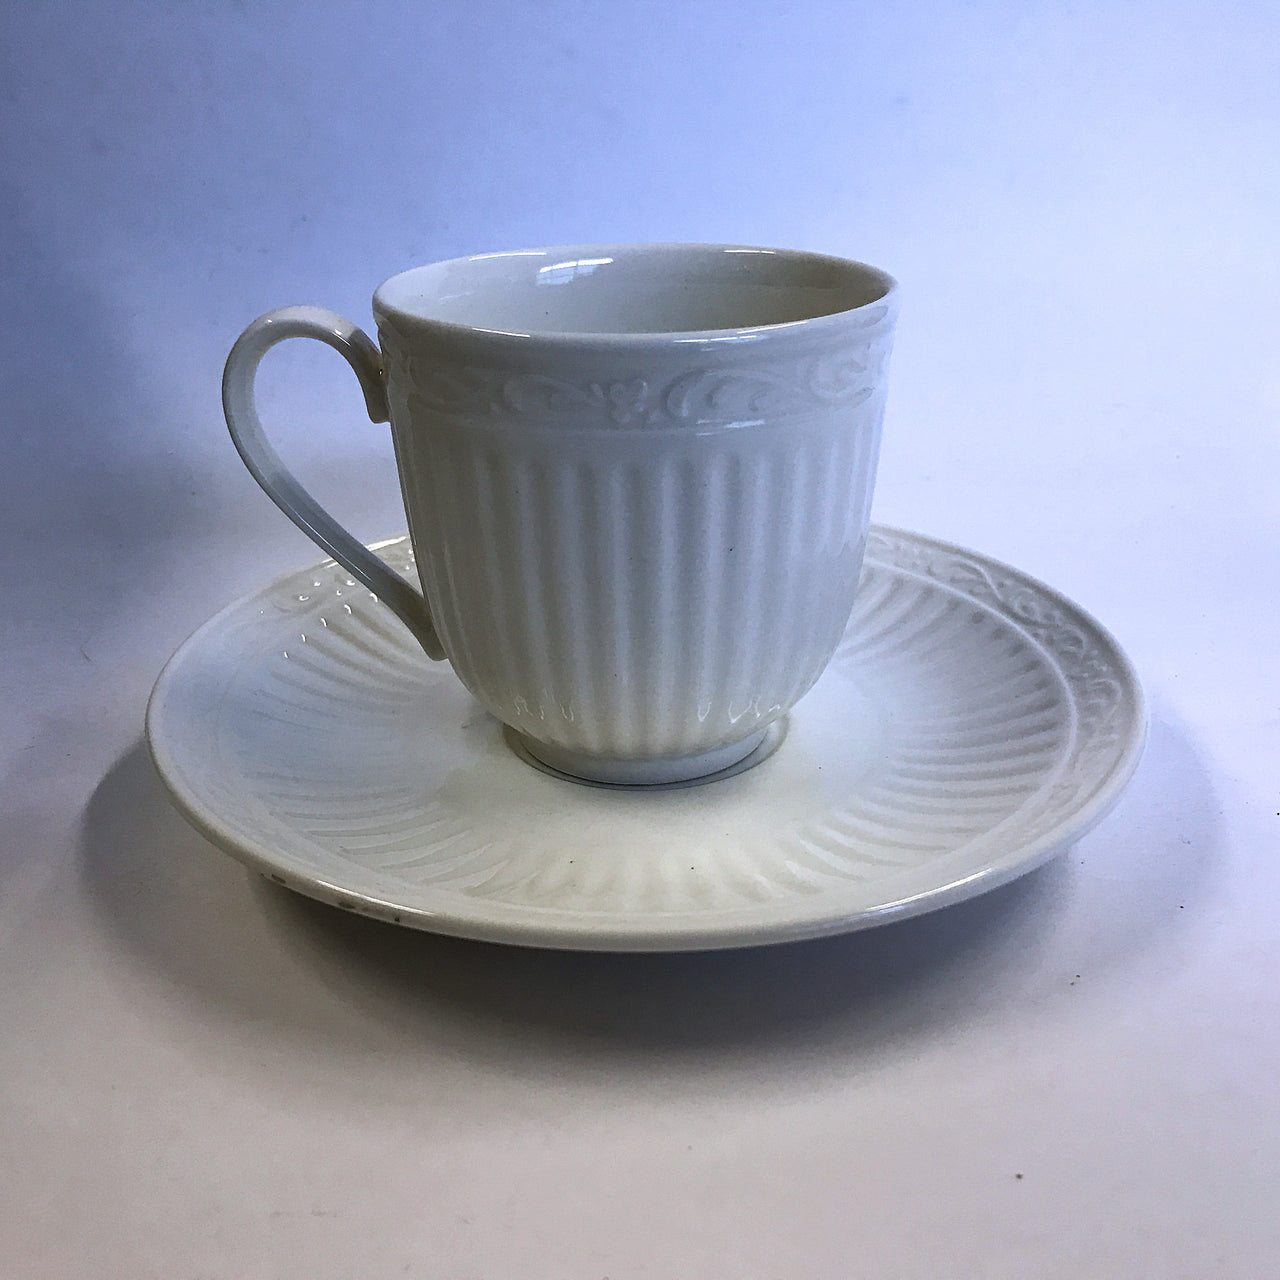 Mikasa Italian Countryside Cup and Saucer Cream Stoneware Scrolls Ribbed DD900